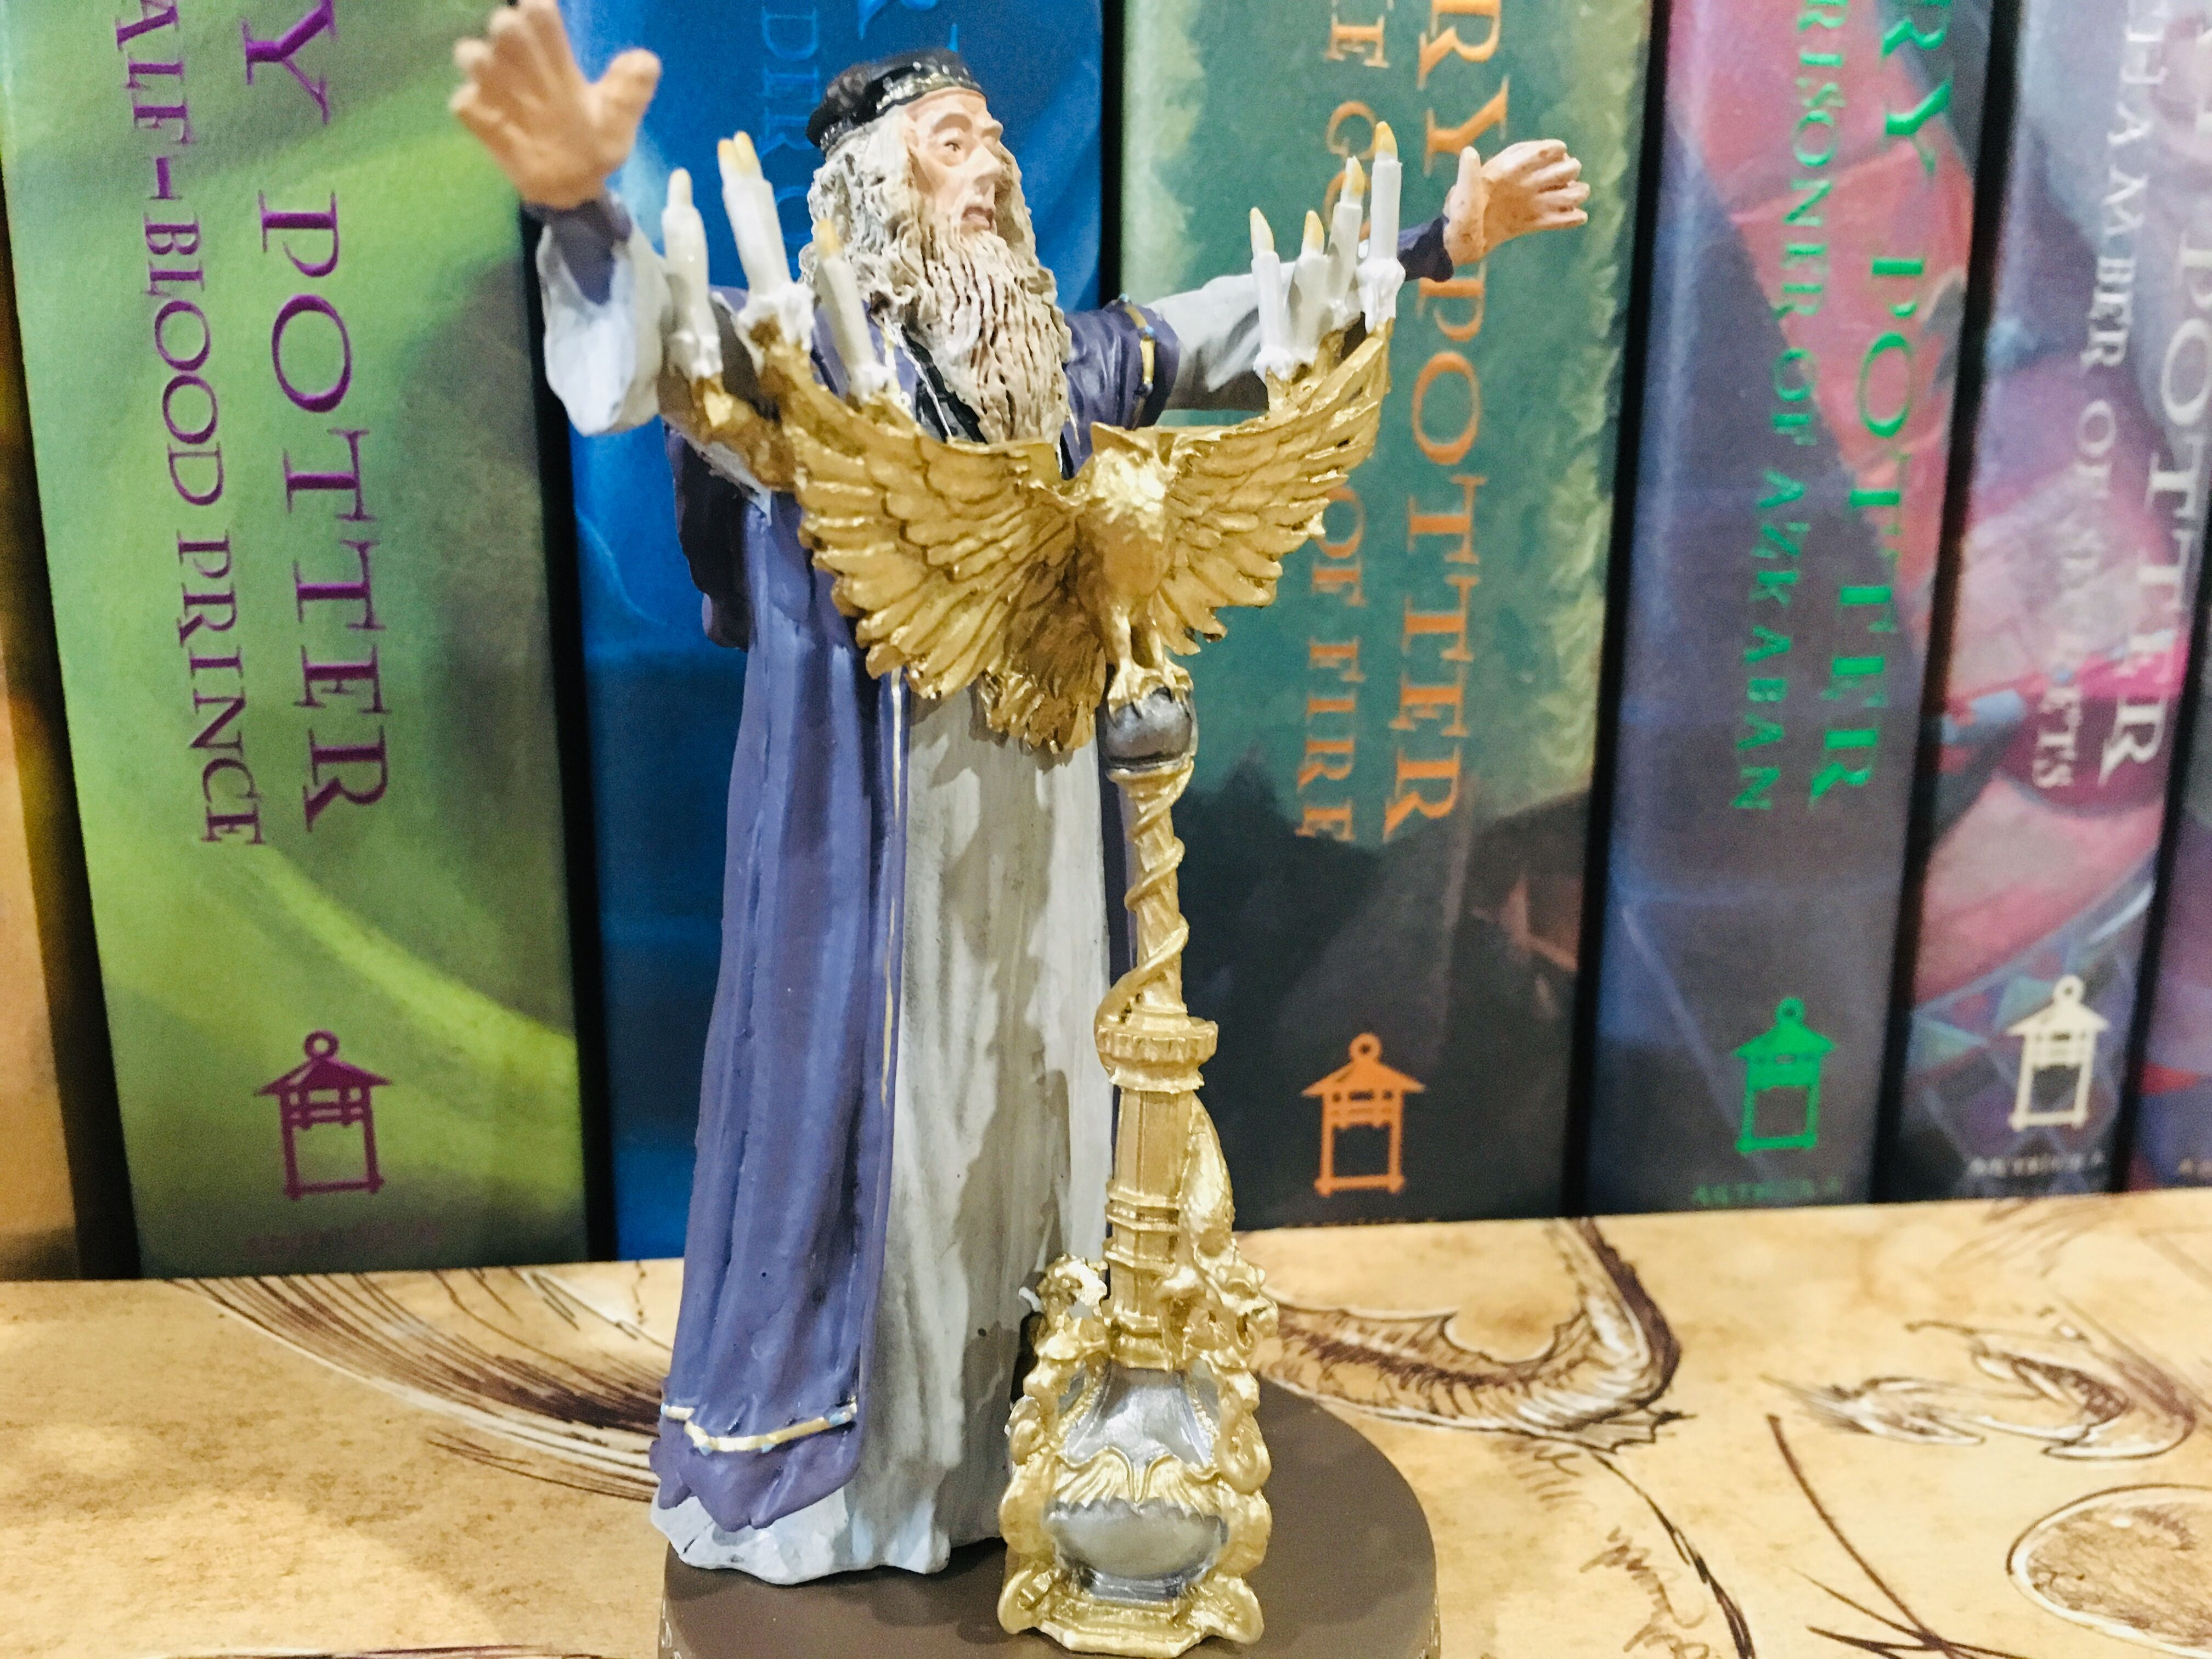 Dumbledore stands with his arms extended, dressed in beautiful flowing robes and standing atop his golden lectern.